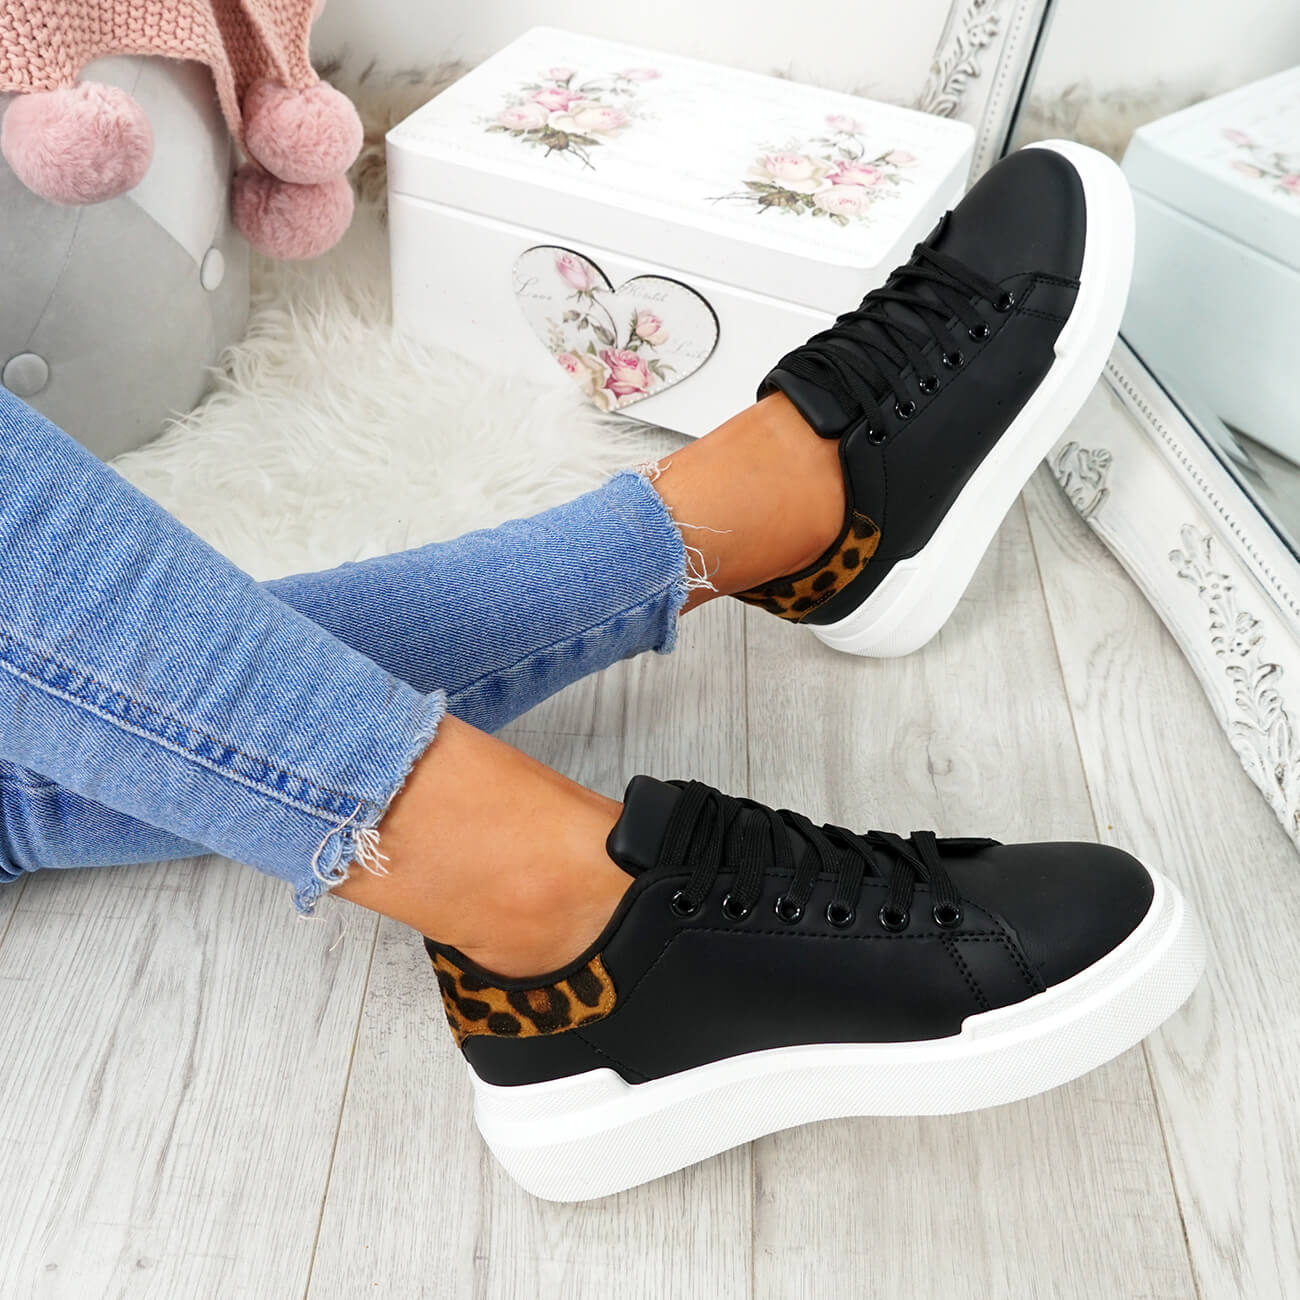 WOMENS-LADIES-LACE-UP-PLIMSOLL-SNEAKERS-CROC-SNAKE-TRAINERS-CASUAL-SHOES-SIZE thumbnail 9